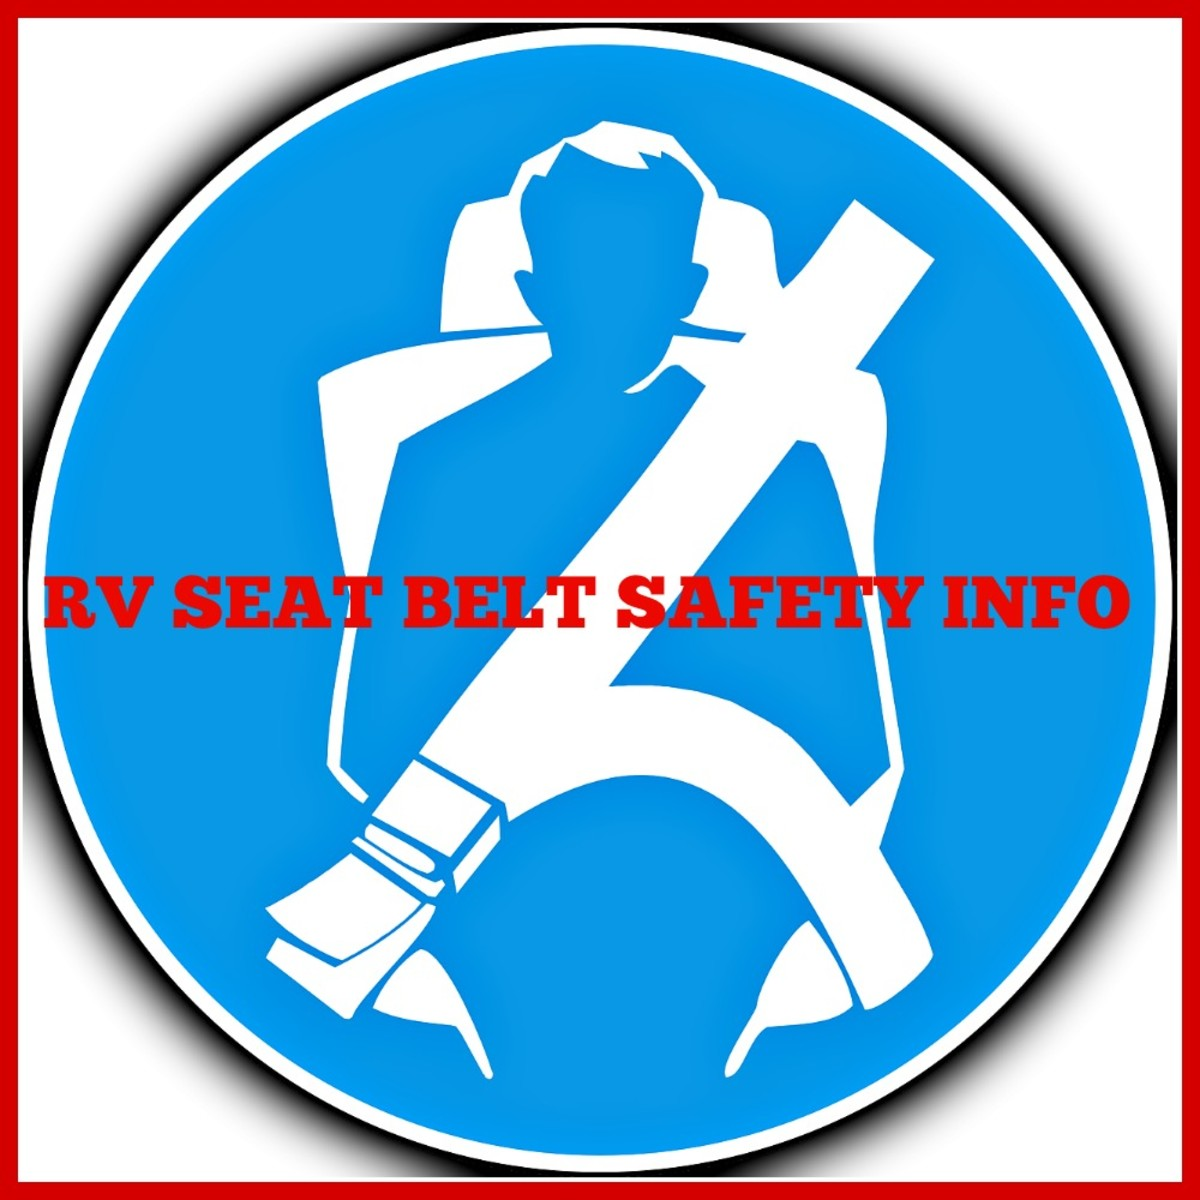 What You Need to Know About RV Seat Belt Safety